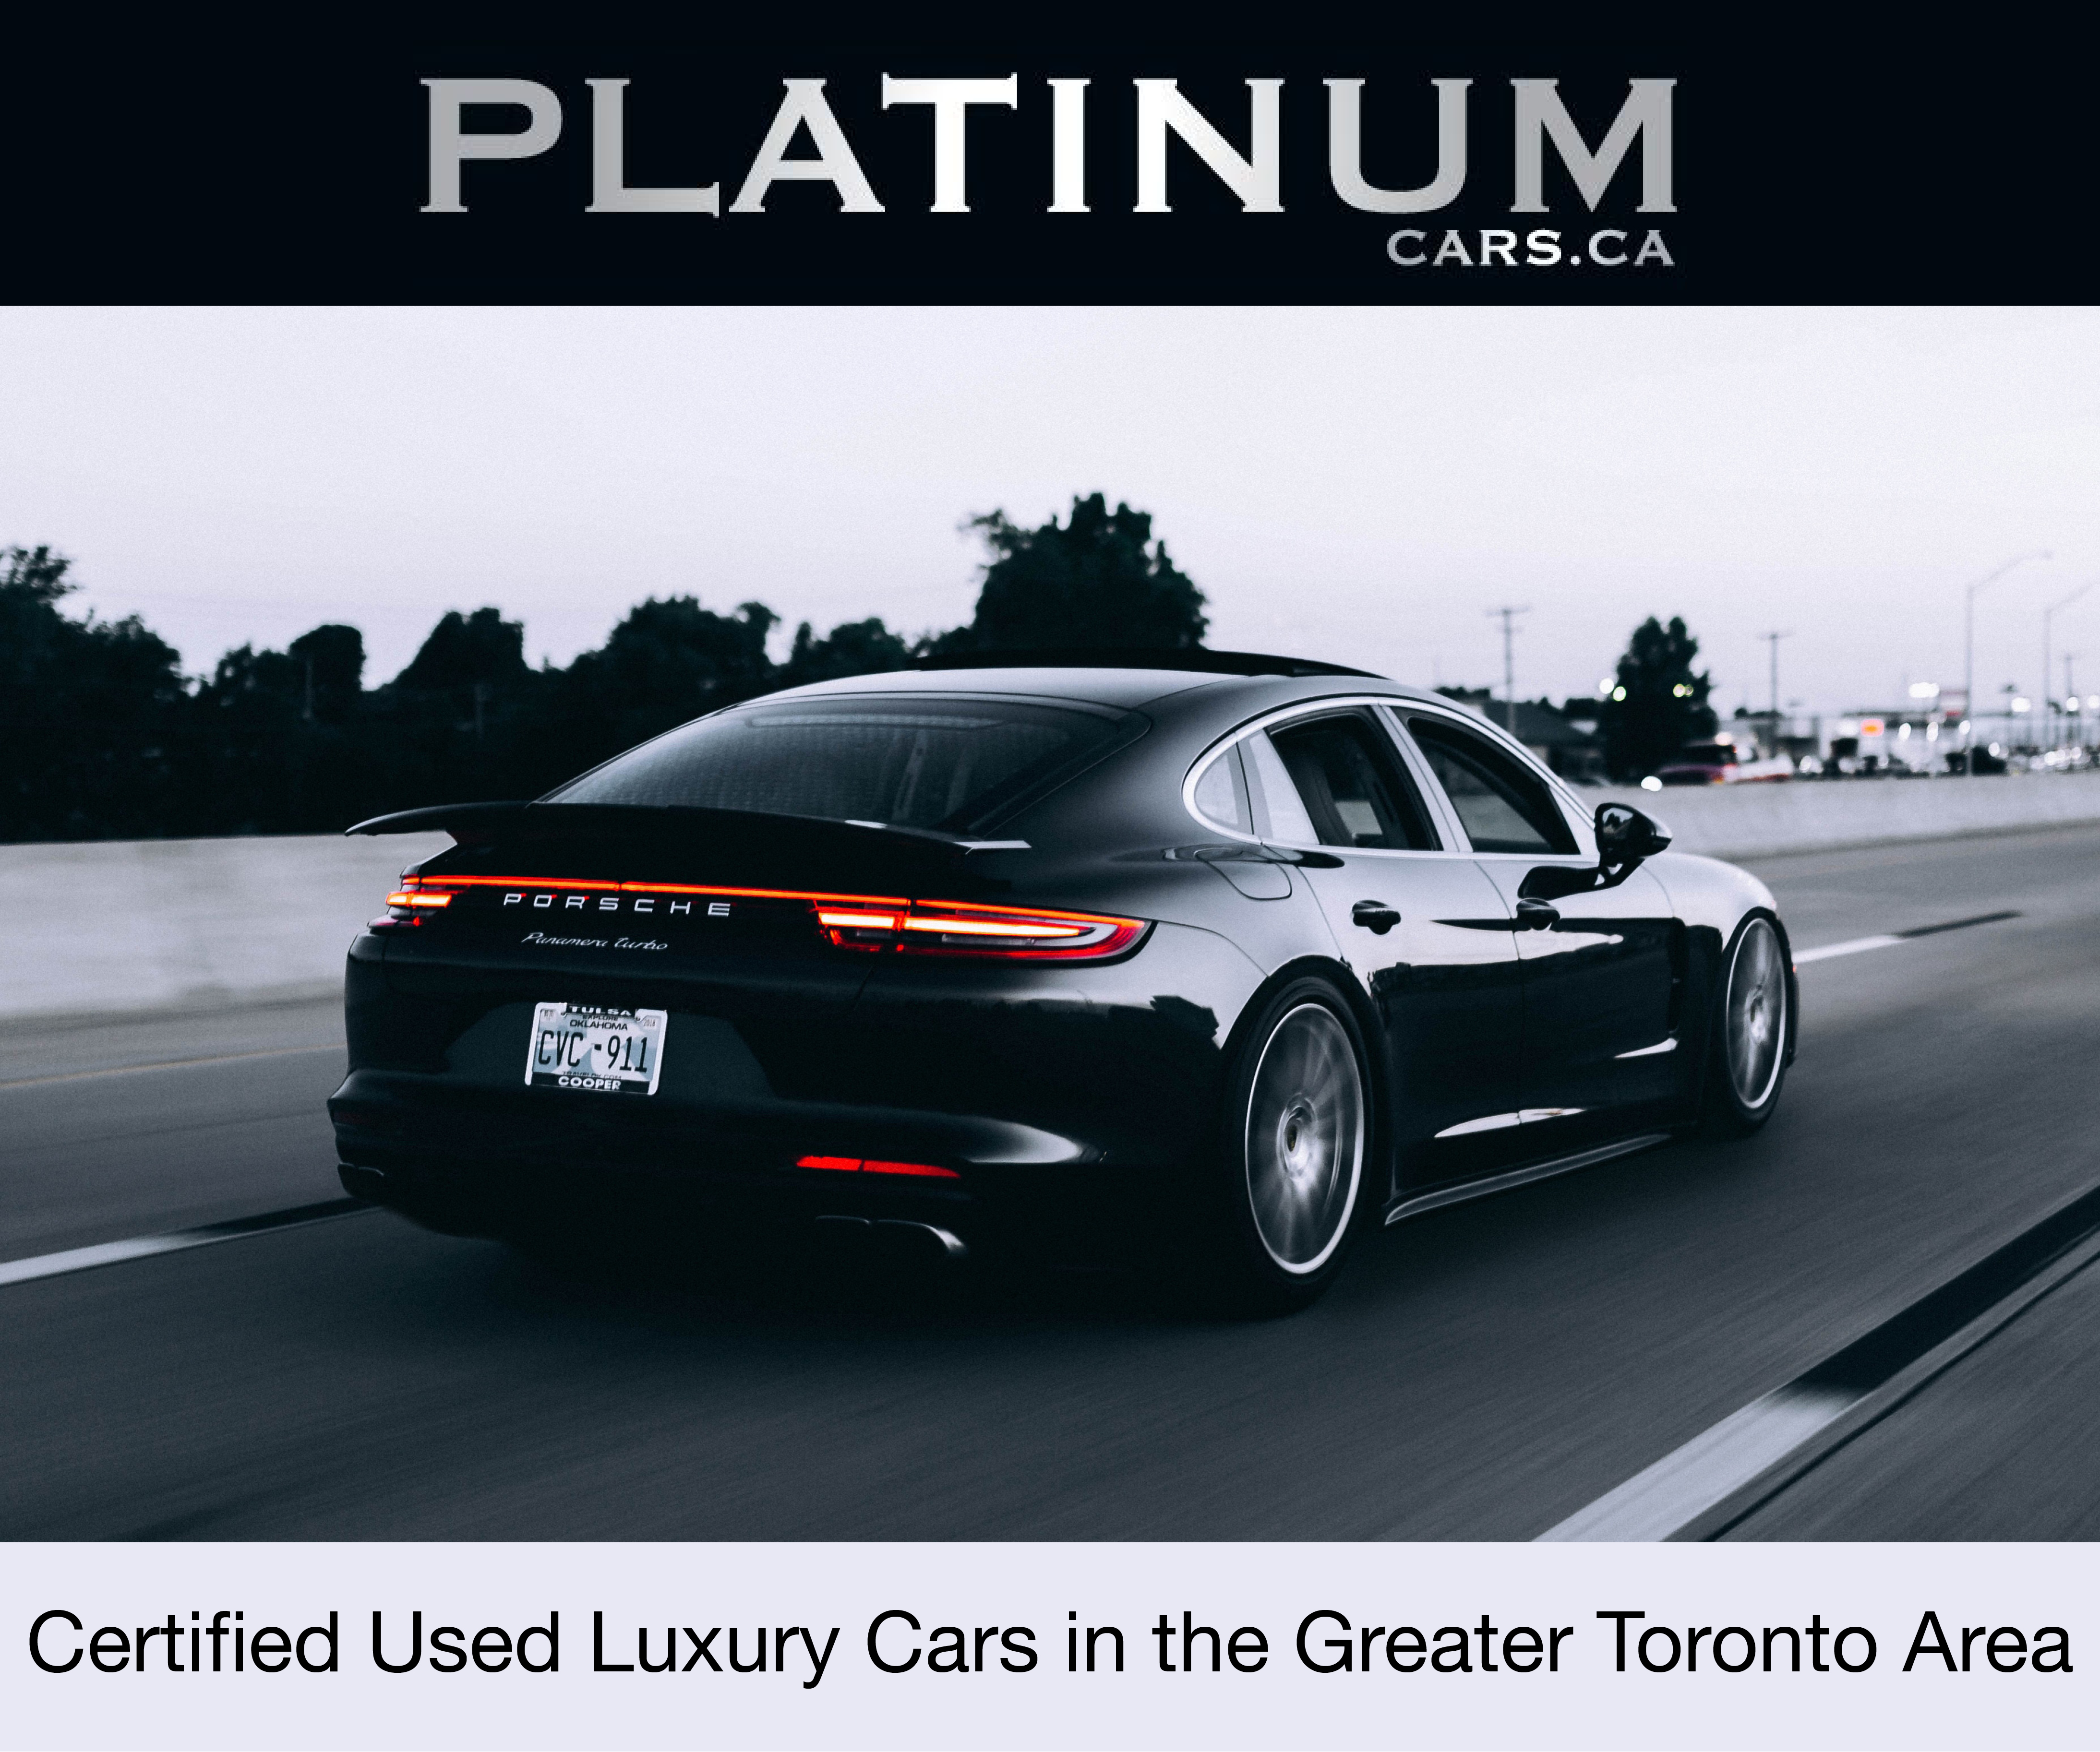 More from Platinum Cars